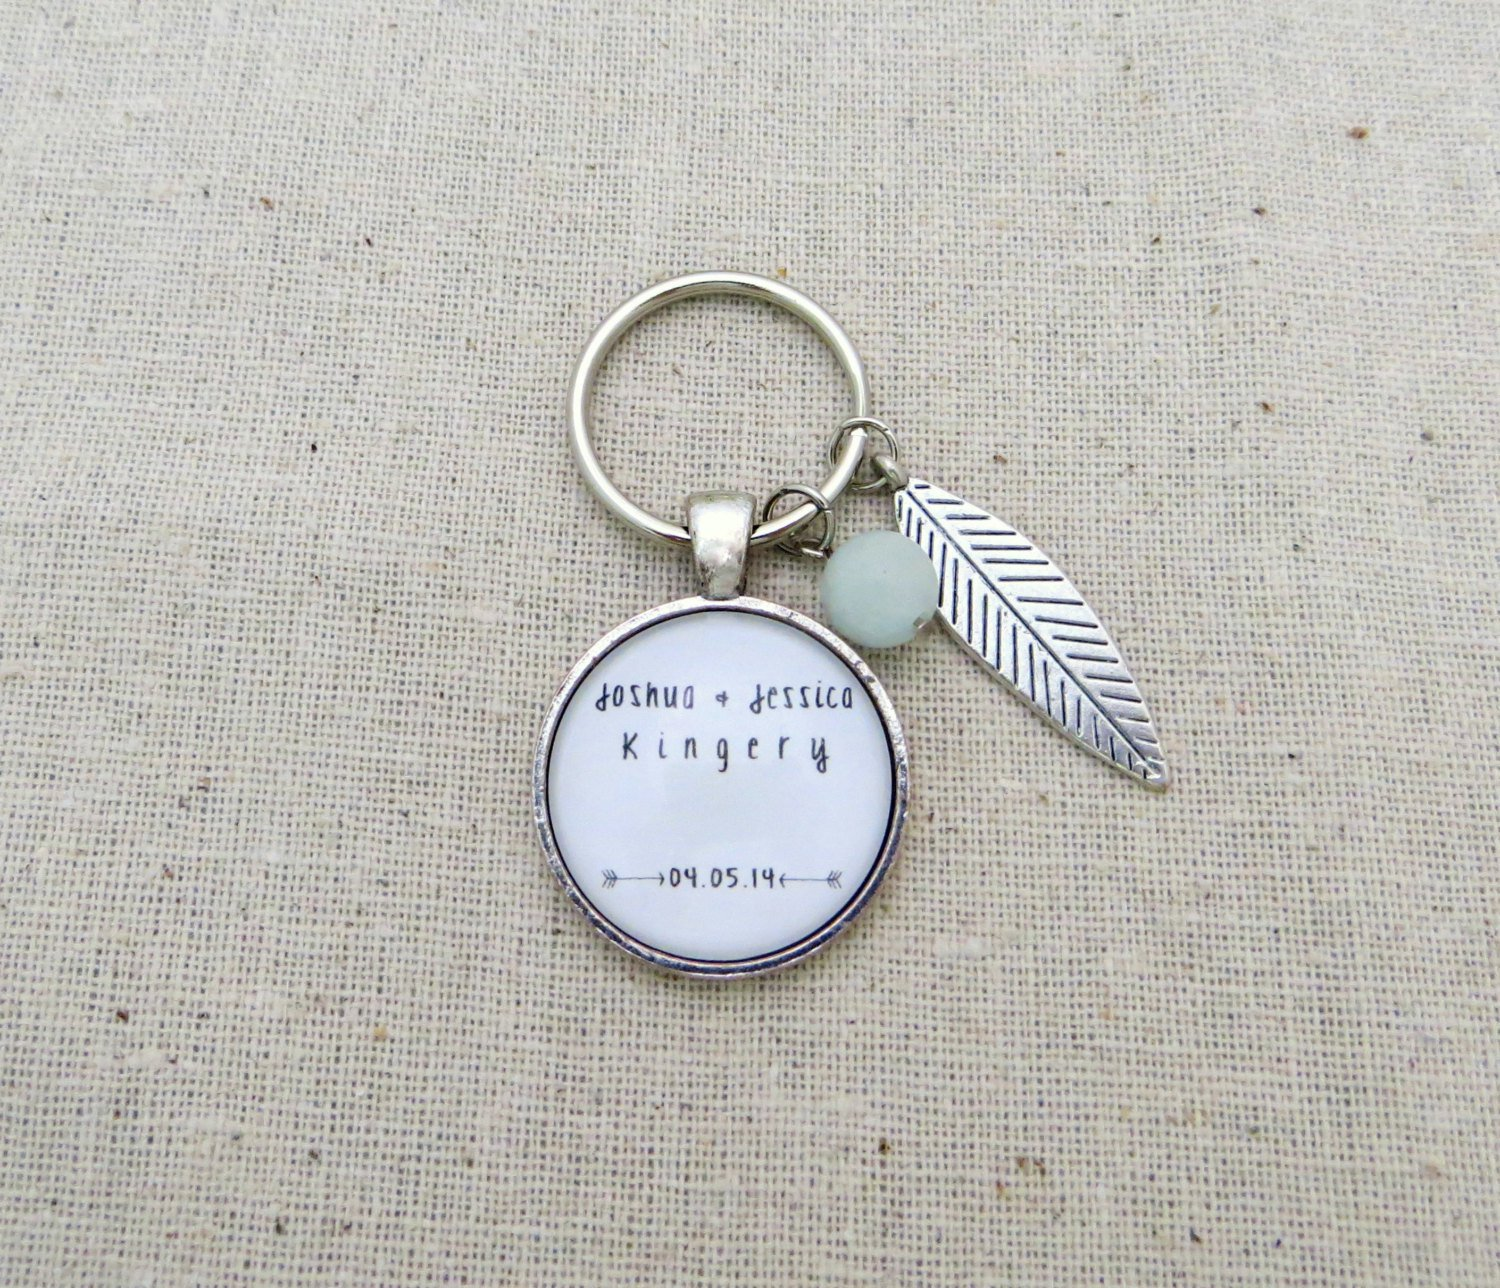 Personalized Keychain with Name, Last Name, Wedding Date (Silver, Newlywed Gift)